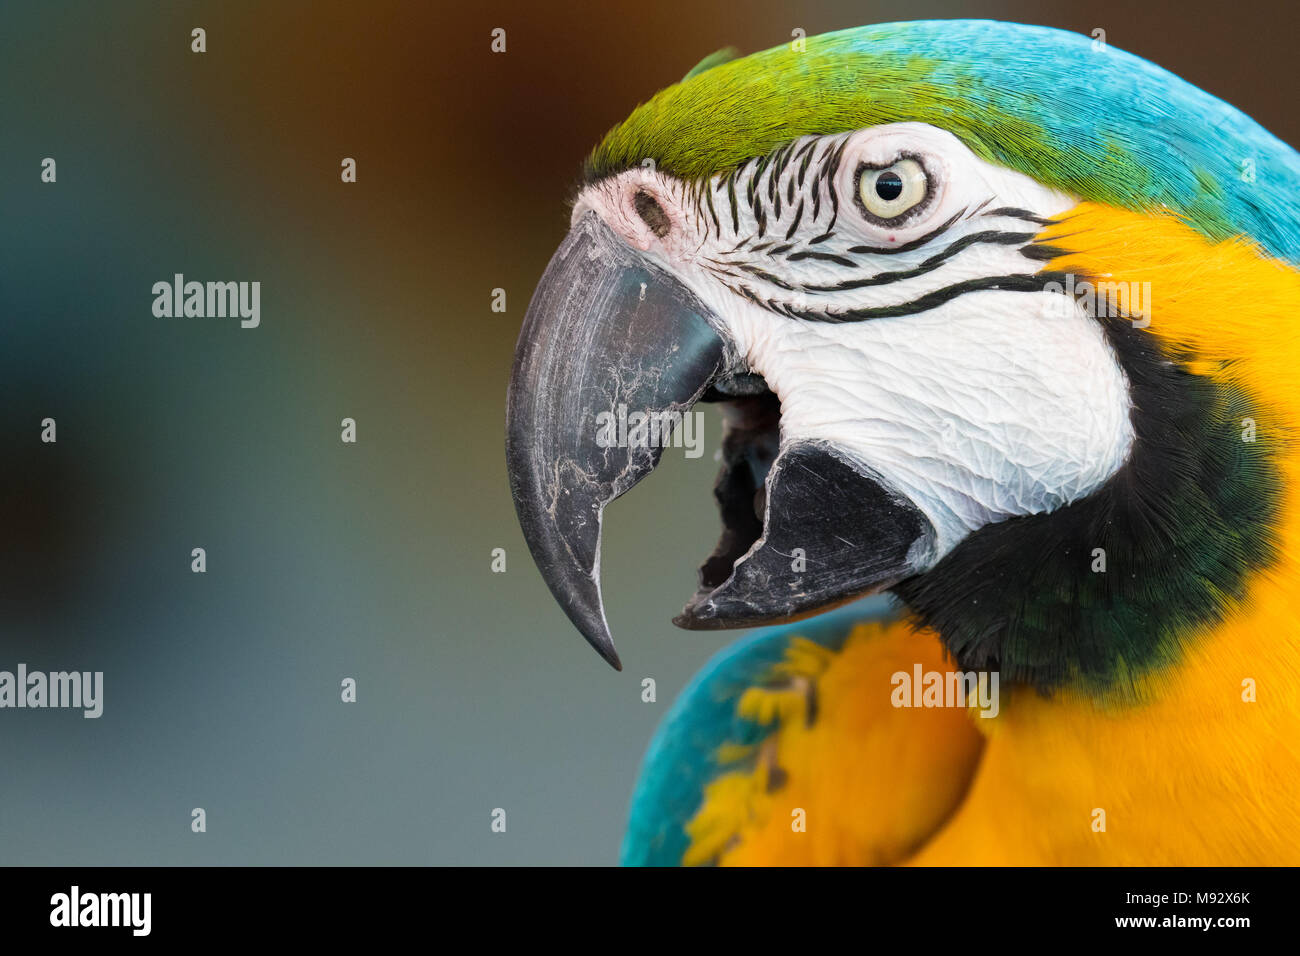 Head shot of a macaw - Stock Image